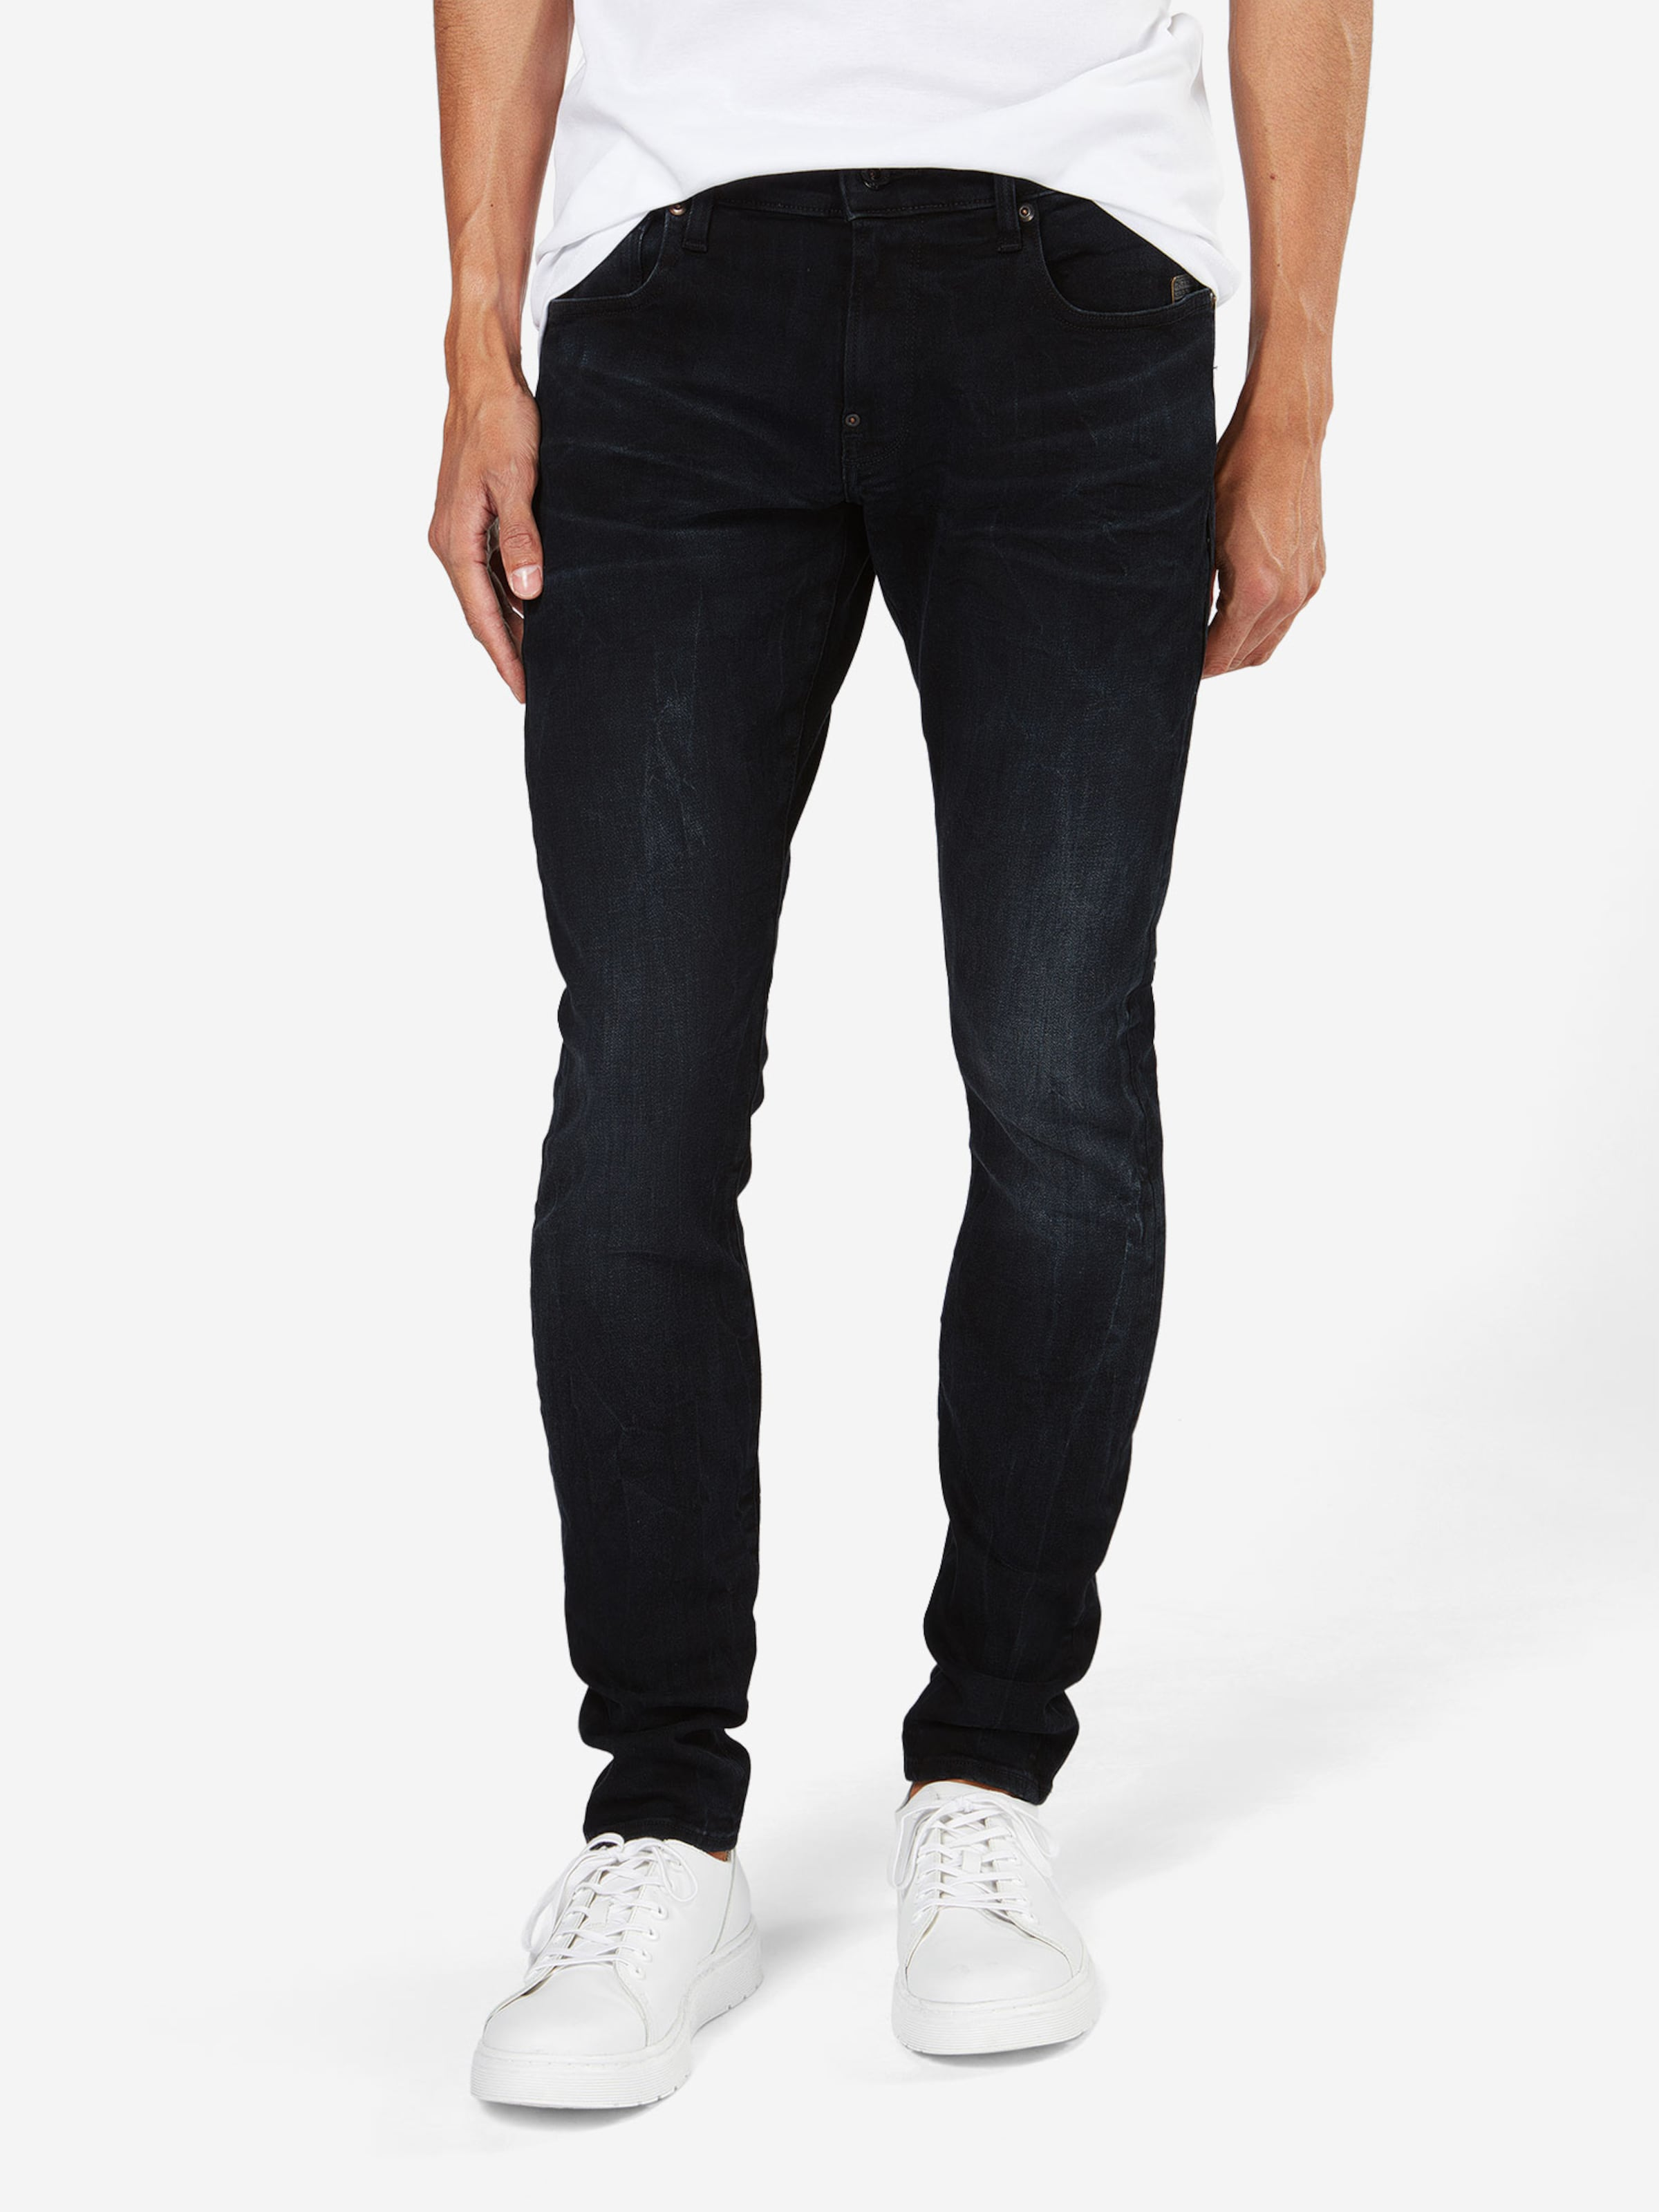 STAR RAW G Slim' Jeans Super STAR G 'Revend Bqf7cEZ